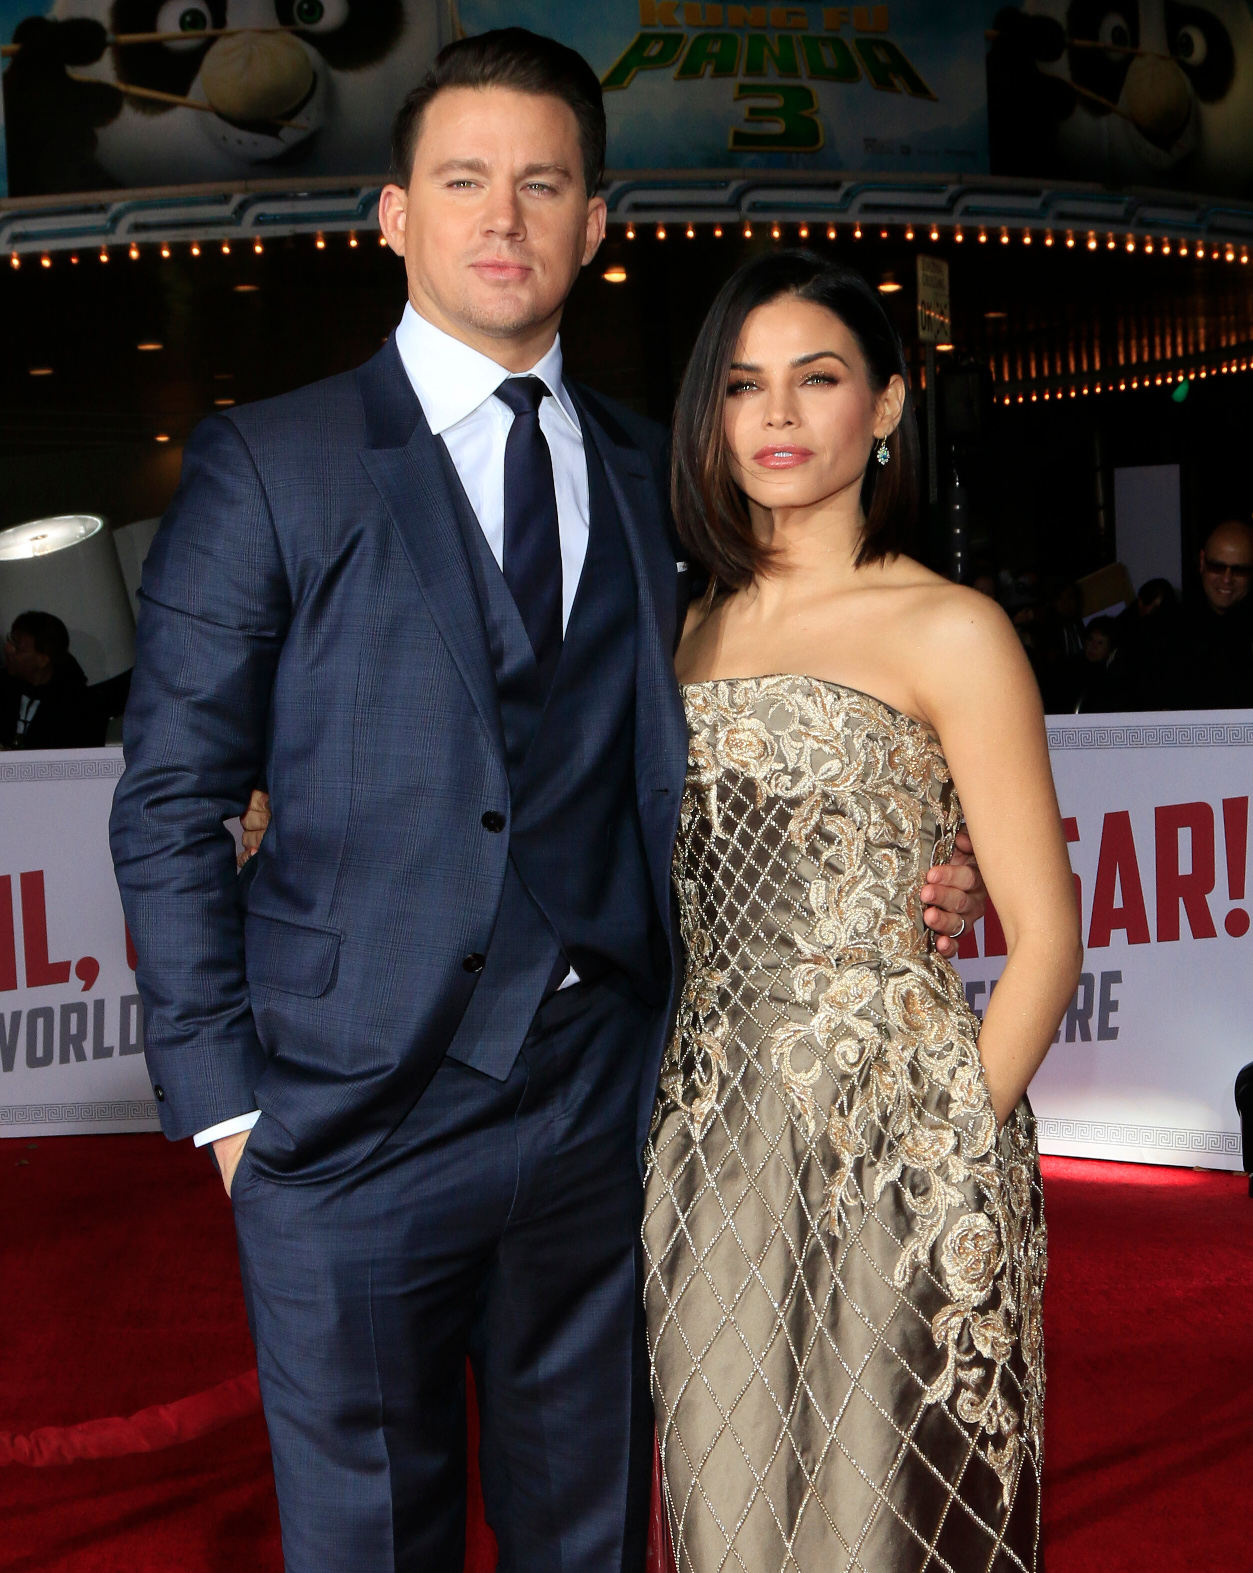 WESTWOOD, CA - FEBRUARY 01: Actor Channing Tatum and actress Jenna Dewan-Tatum attend Universal Pictures' 'Hail, Caesar!' premiere at Regency Village Theatre on February 1, 2016 in Westwood, California. <P> Pictured: Channing Tatum, Jenna Dewan, Jenna Dewan Tatum <B>Ref: SPL1219469  020216  </B><BR/> Picture by: @Parisa<BR/> </P><P> <B>Splash News and Pictures</B><BR/> Los Angeles:310-821-2666<BR/> New York:212-619-2666<BR/> London:870-934-2666<BR/> <span id=